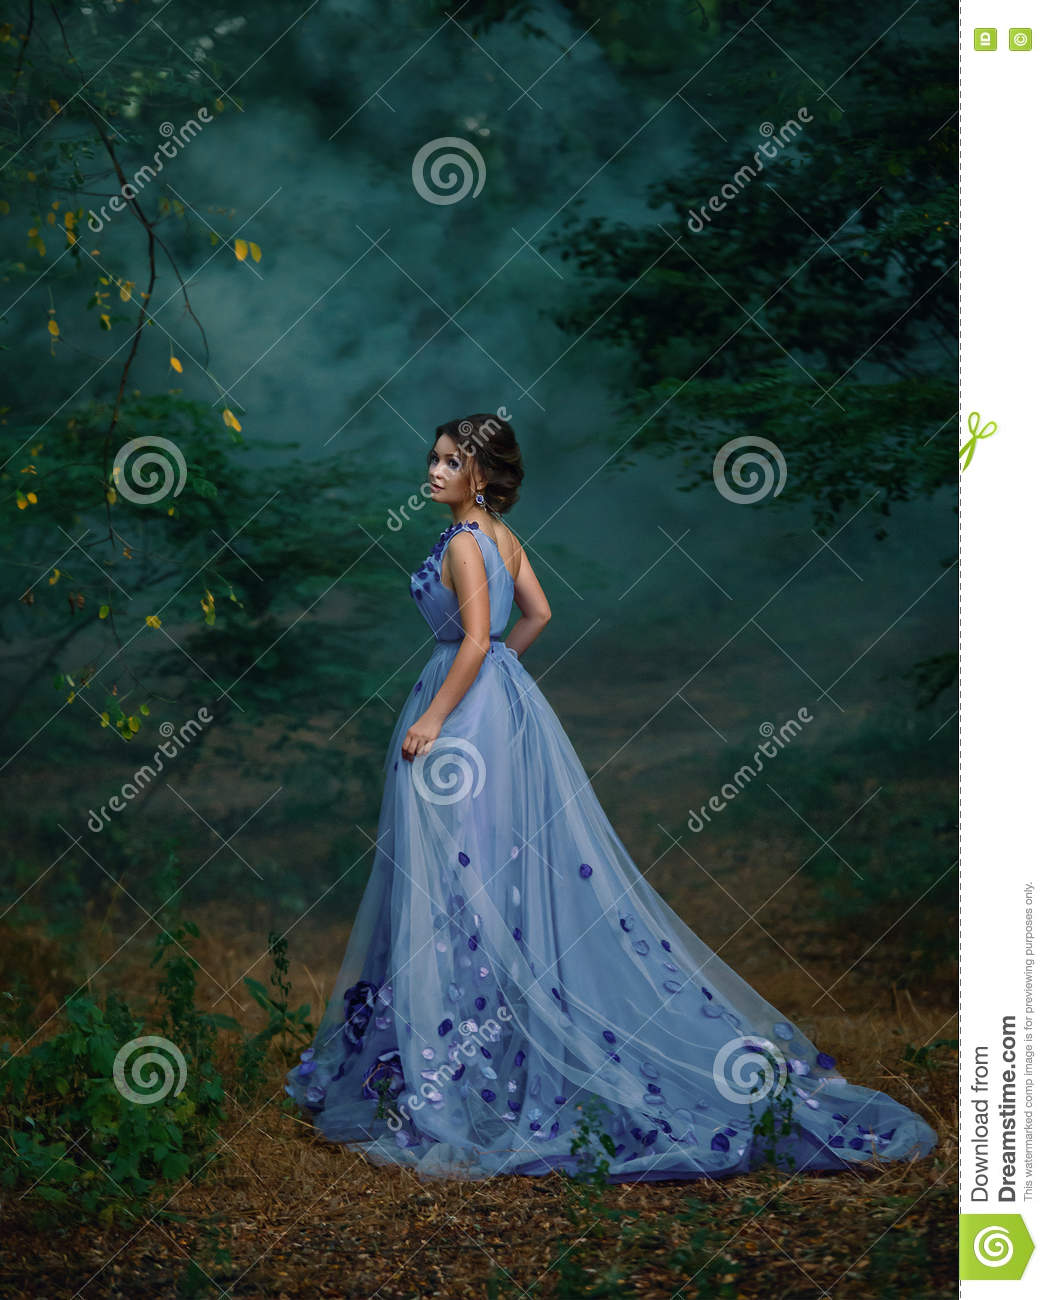 Girl in a long dress,wandering the forest in the fog